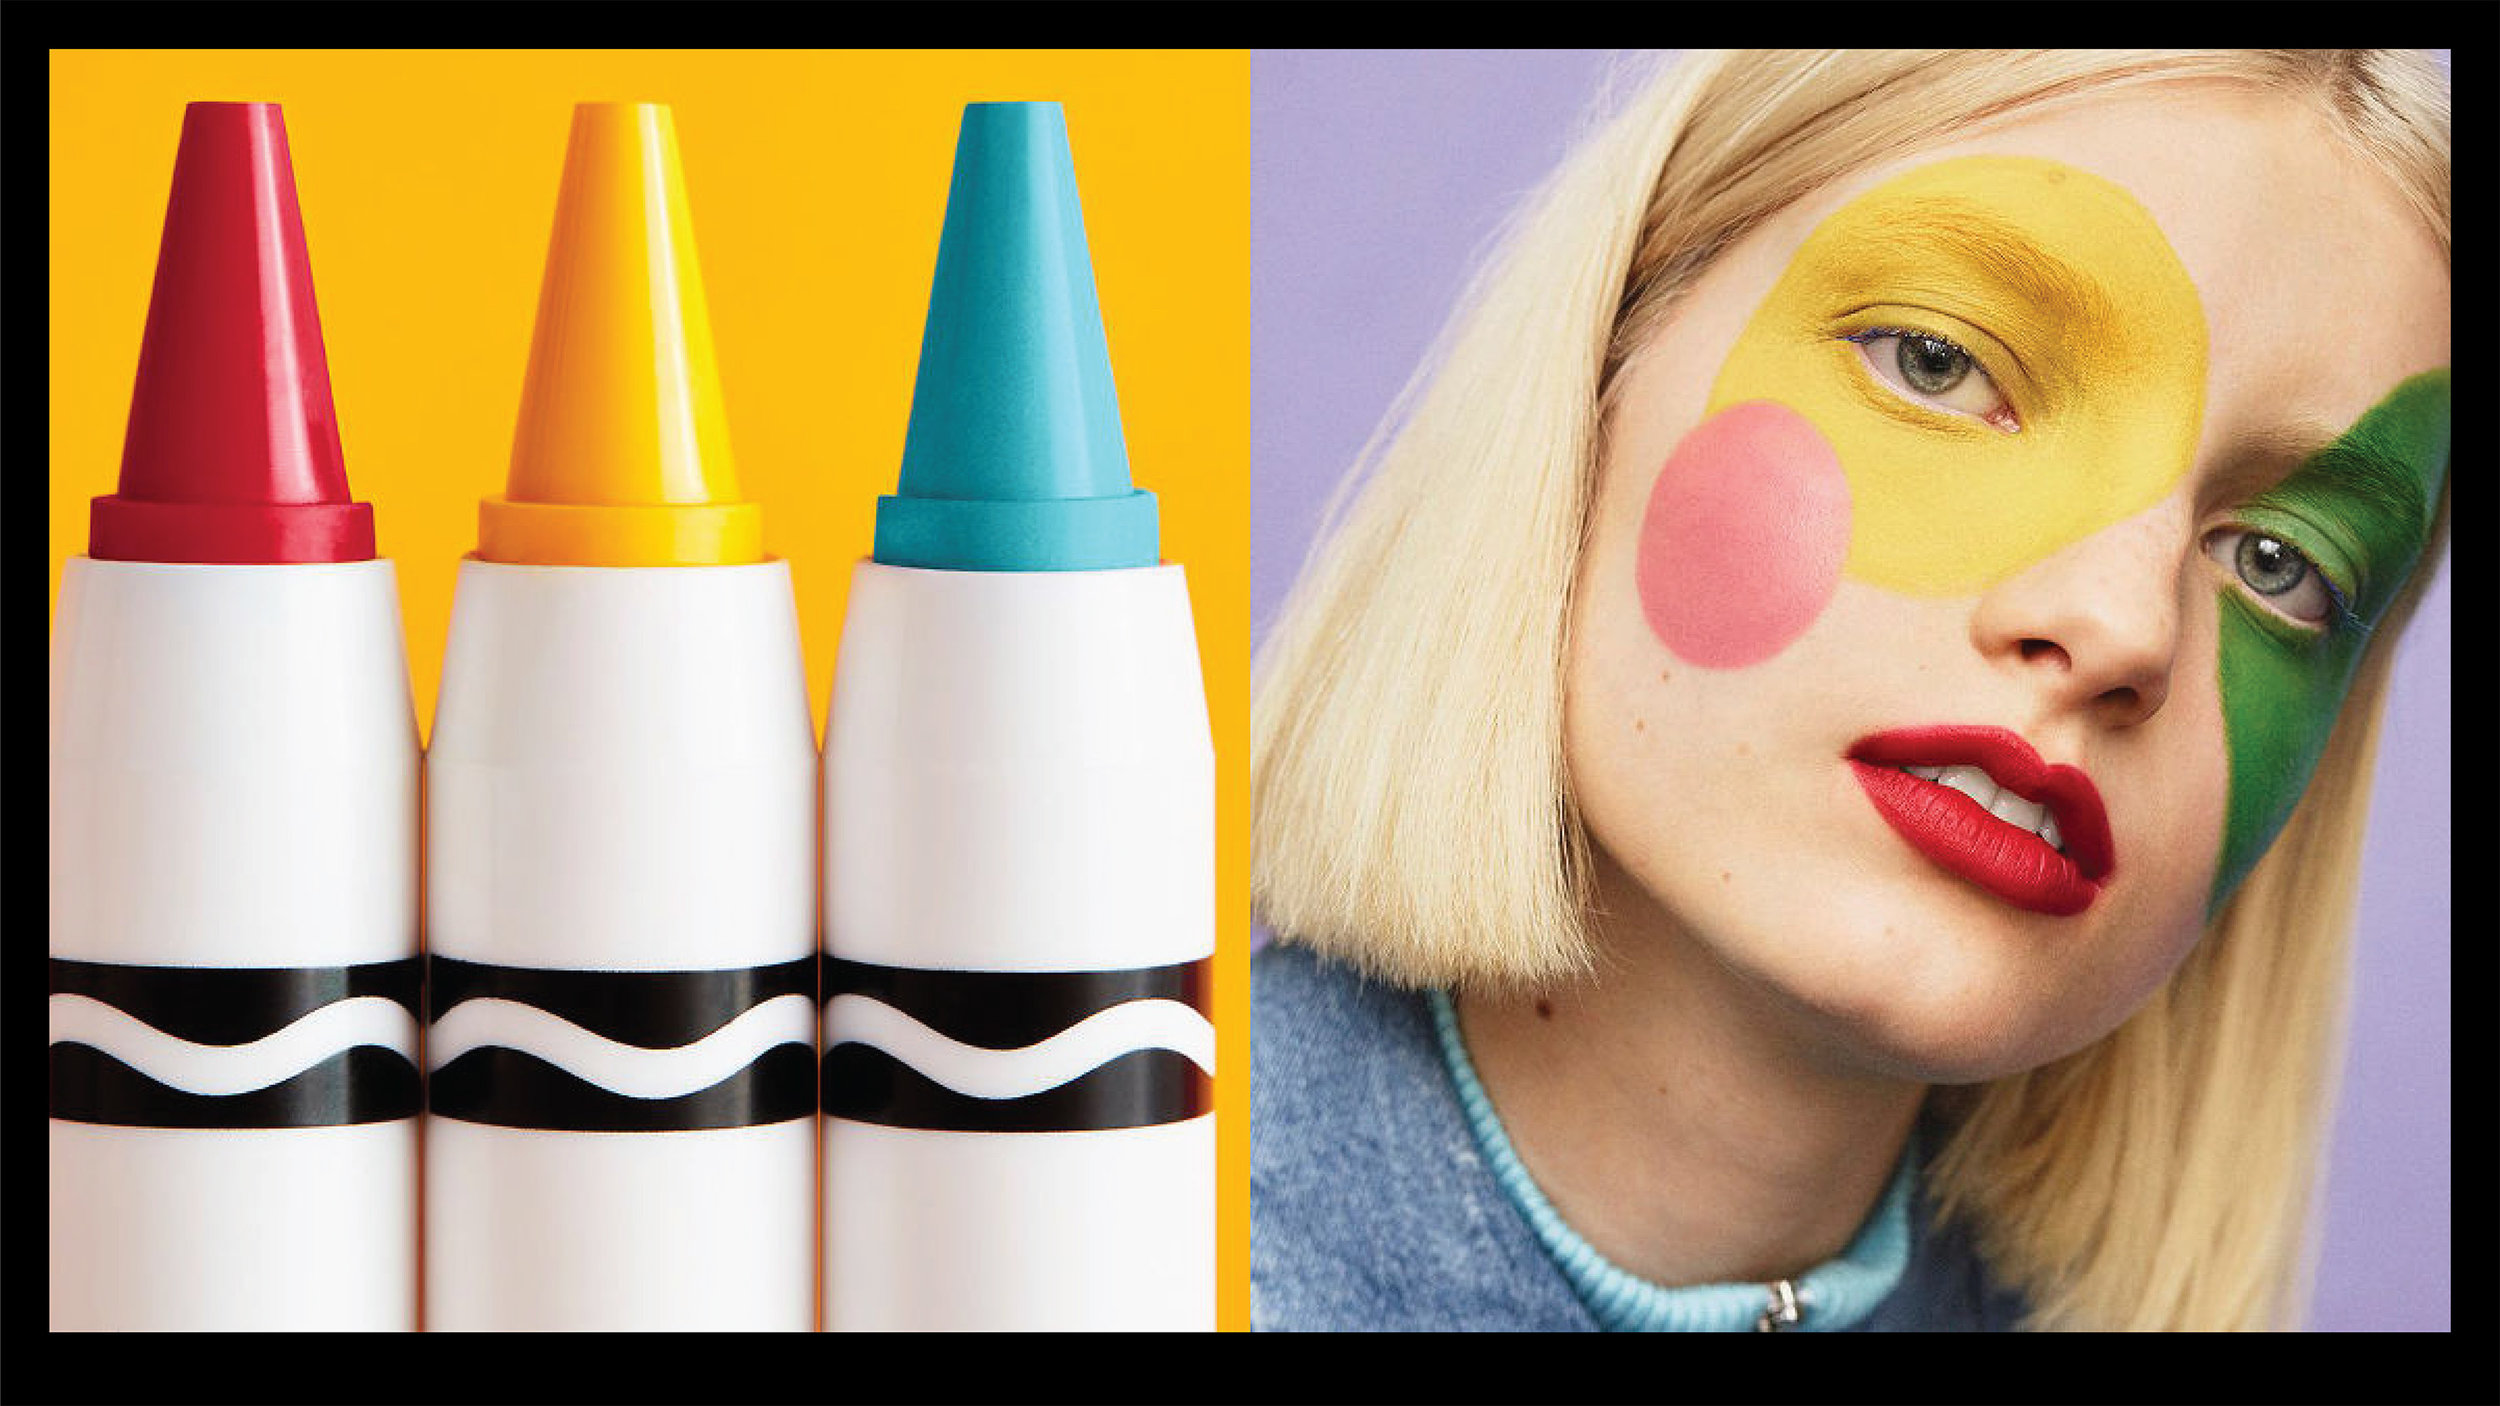 CRAYOLA BEAUTY MAKEUP COLLECTION